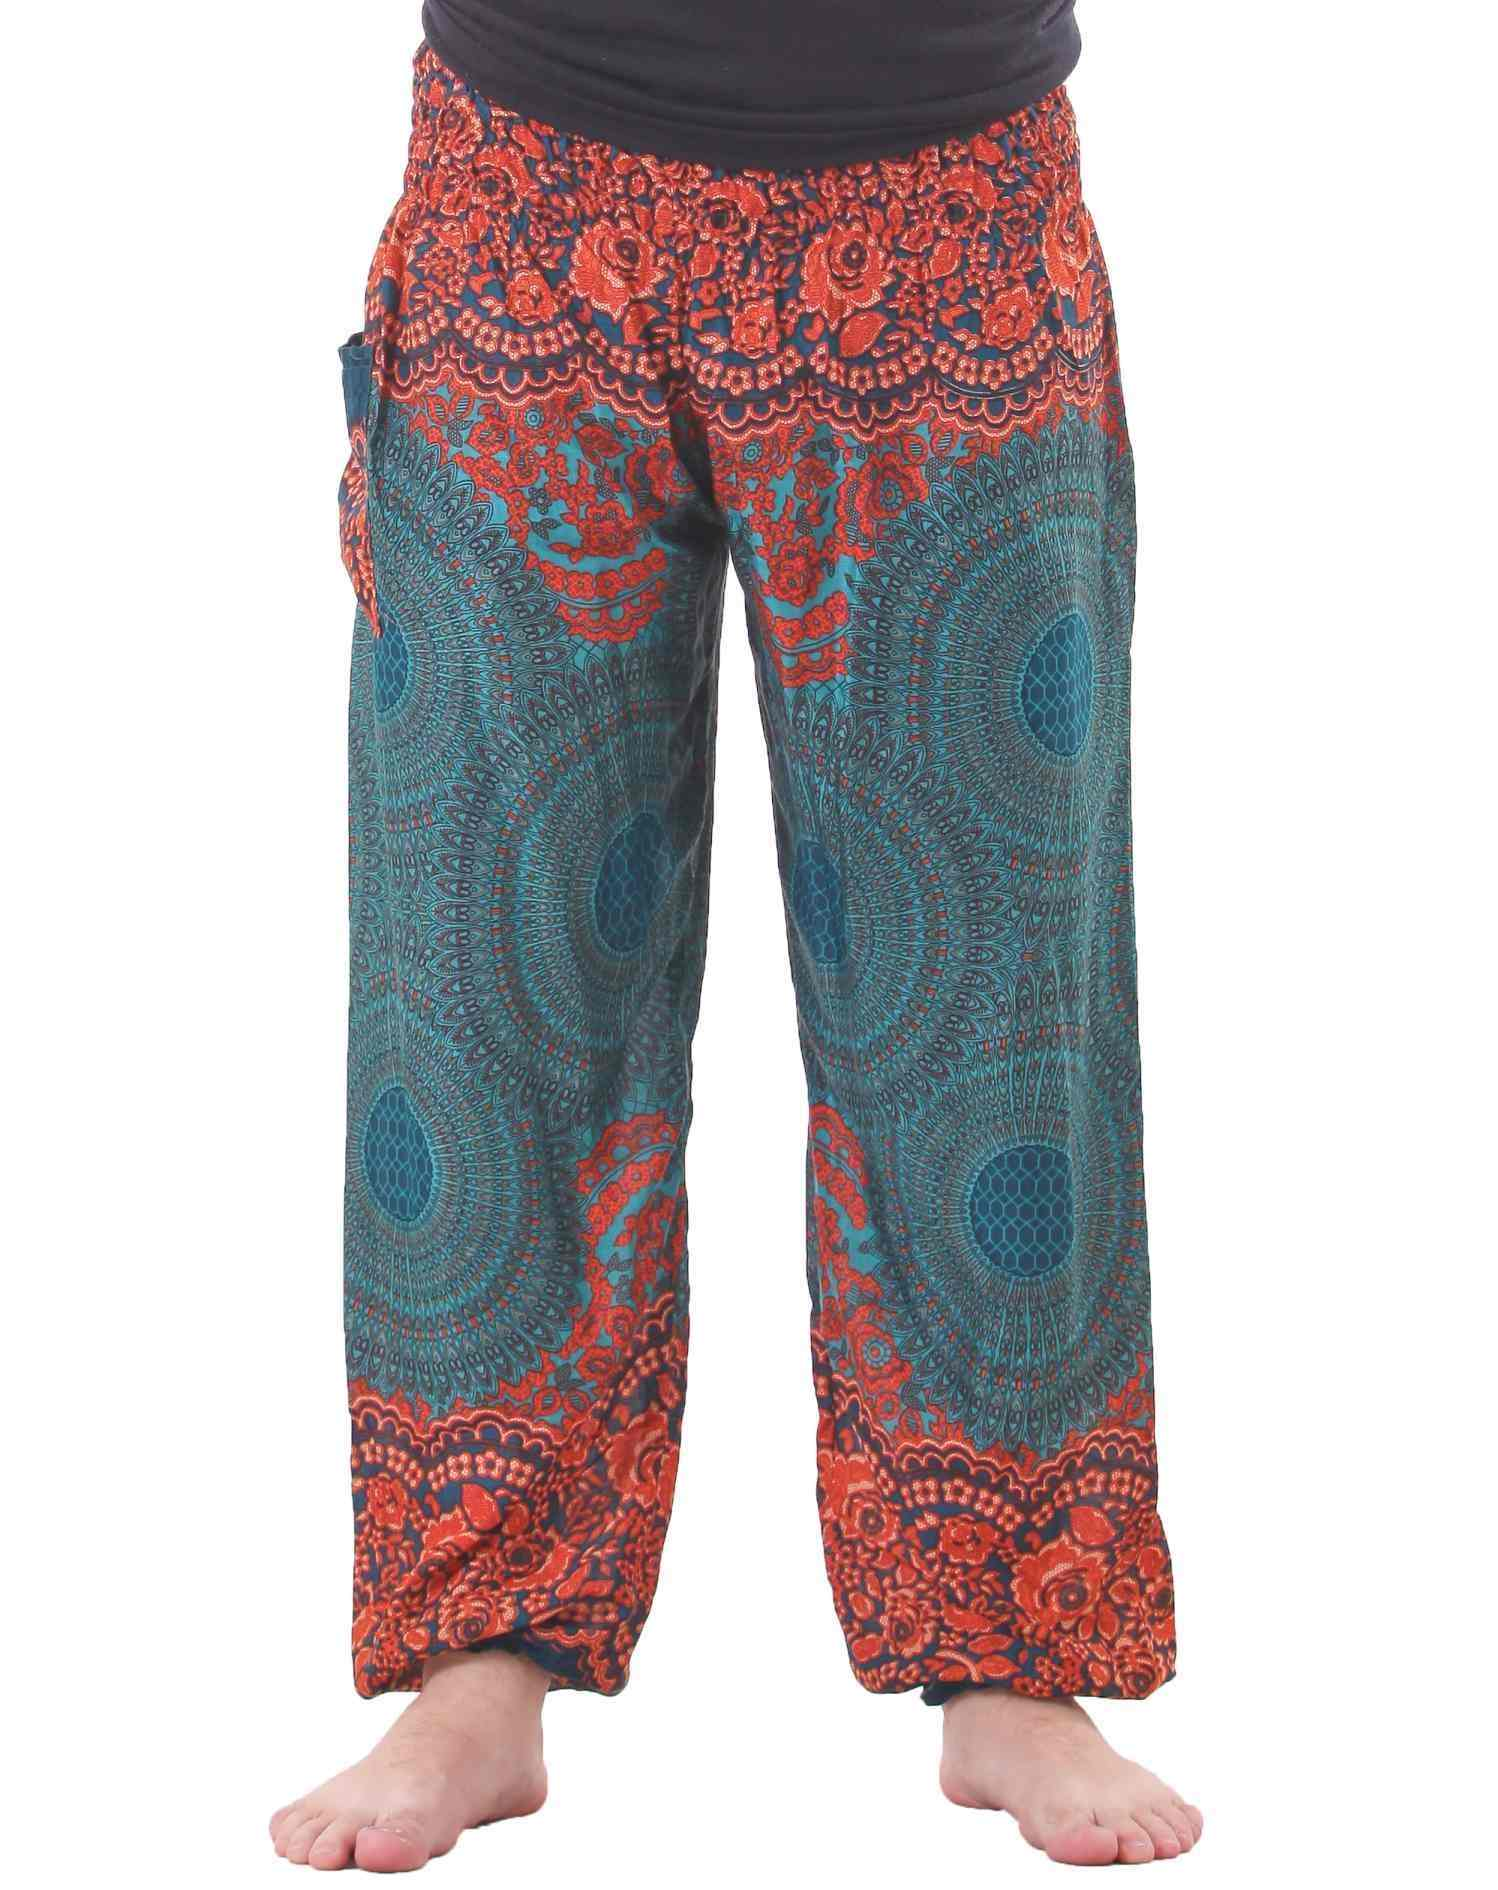 mandala harem hippie pants in turquoise for men UUBKTSN